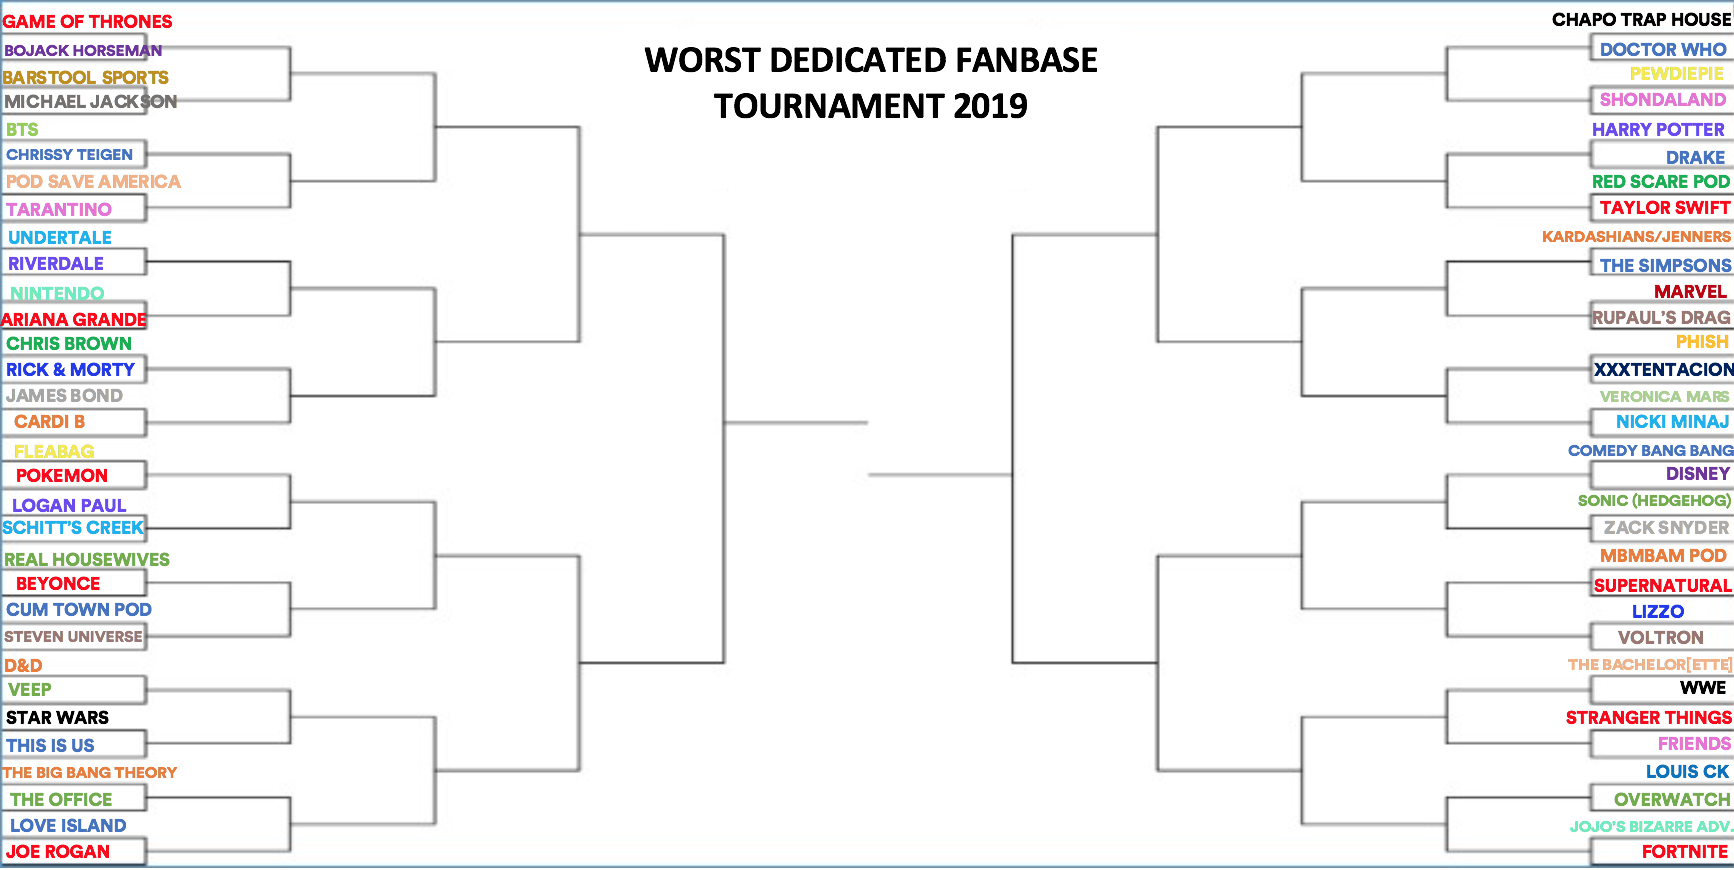 Worst Dedicated Fanbase Tournament 2019: Oops, I Did It Again